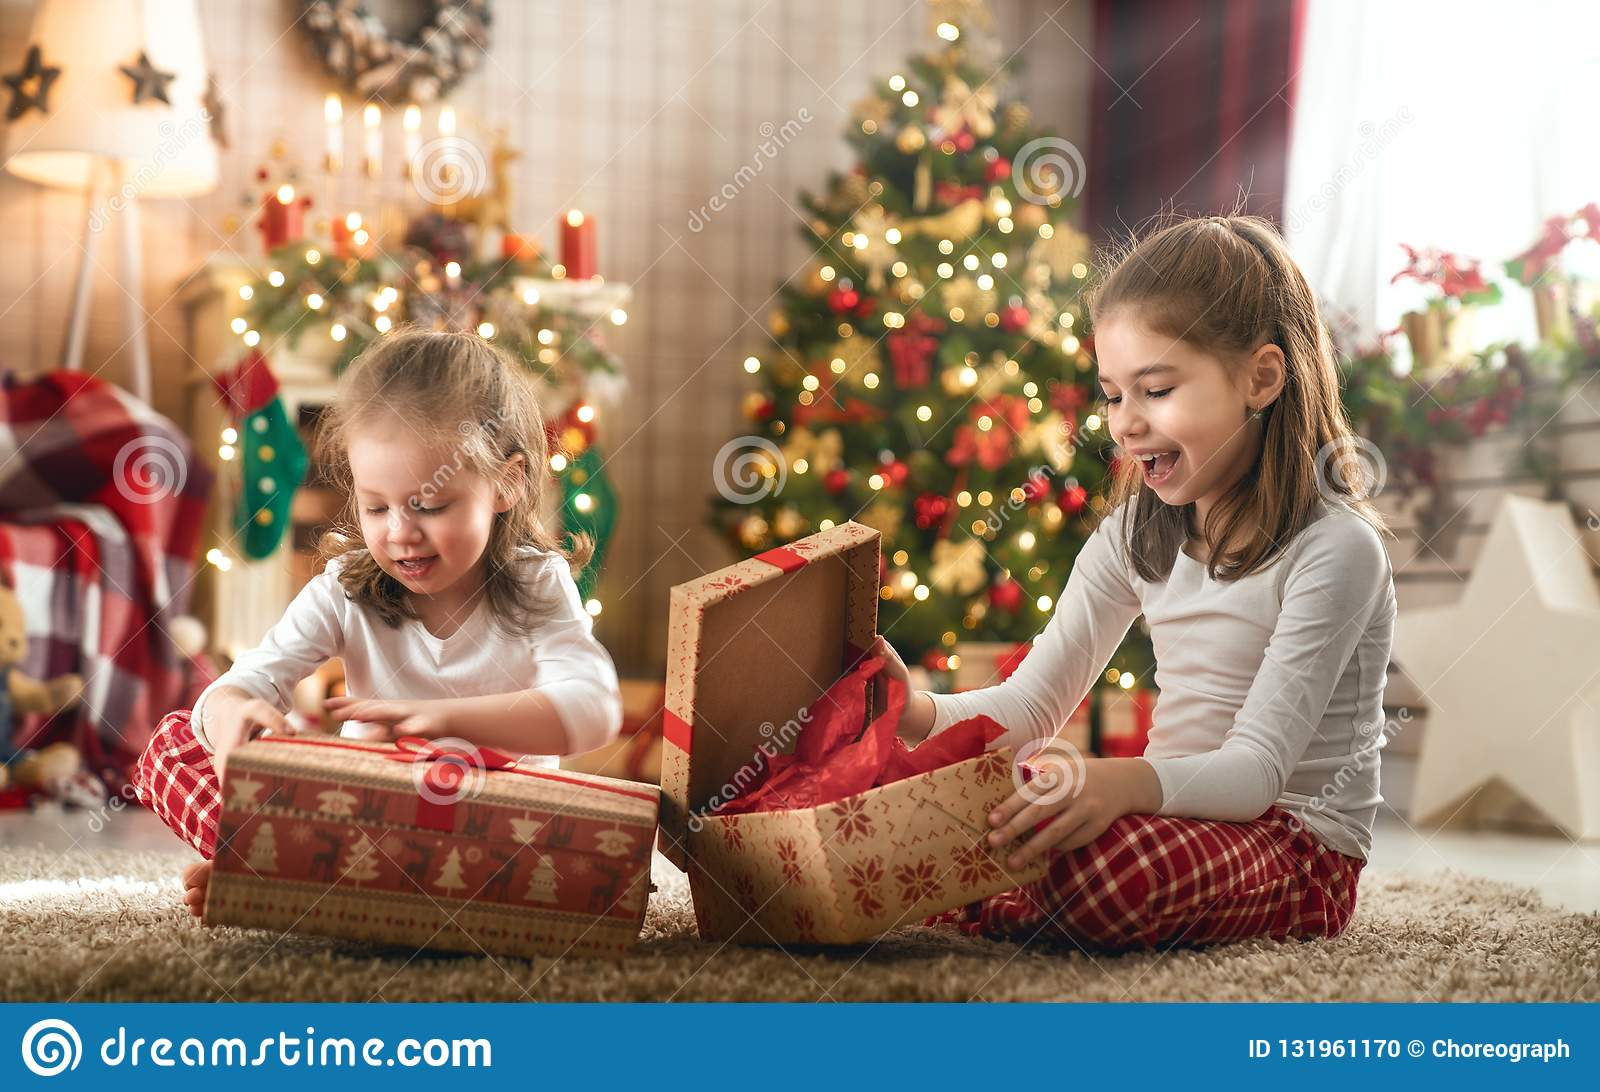 Christmas Gifts For Kids.Girls Opening Christmas Gifts Stock Photo Image Of Present